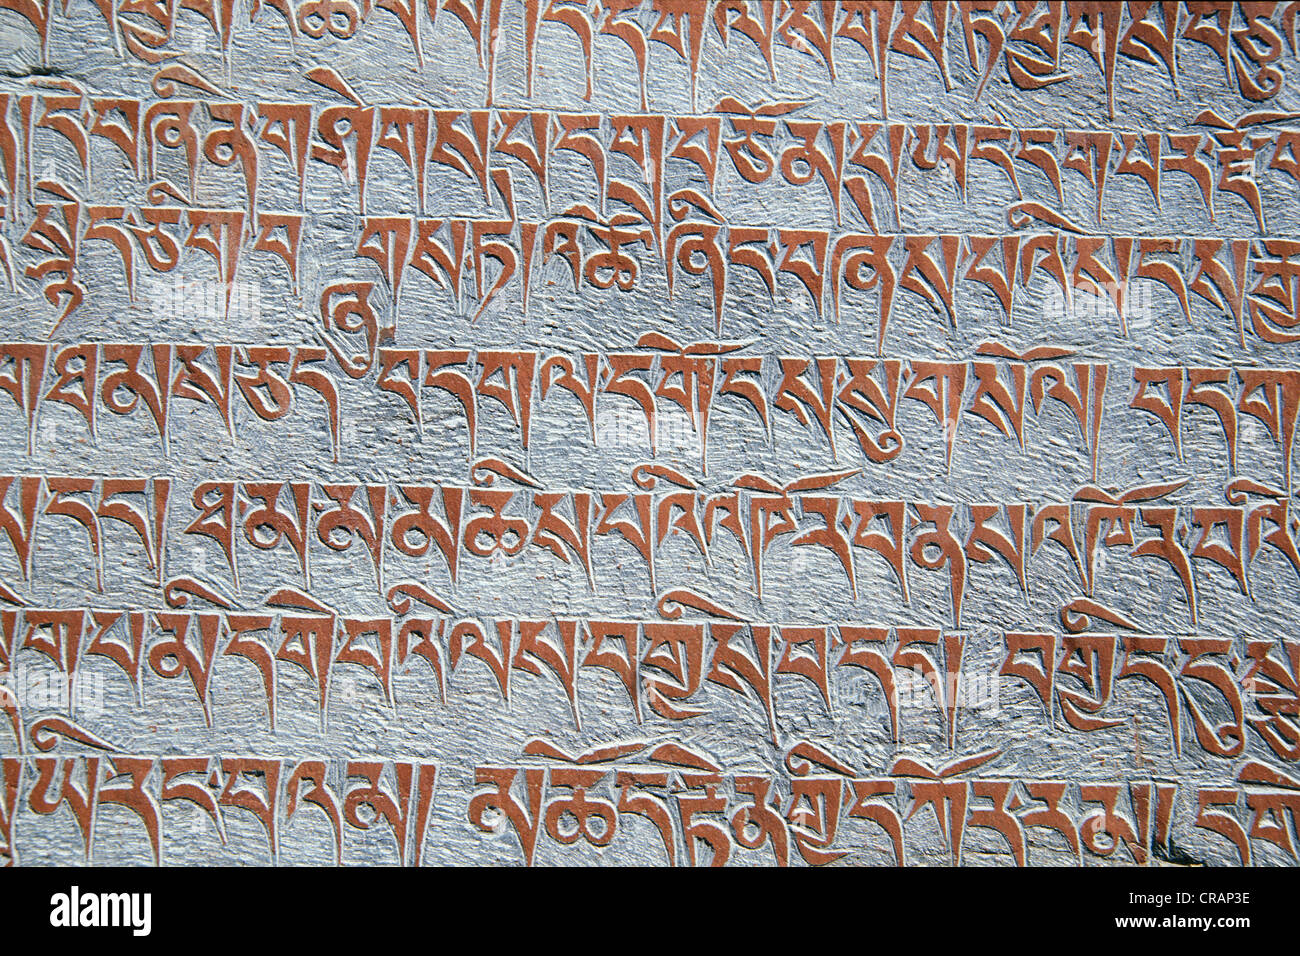 Tibetan Buddhist mantras engraved in stone, Tongde monastery, Zanskar valley, Zanskar, Ladakh, Jammu and Kashmir - Stock Image